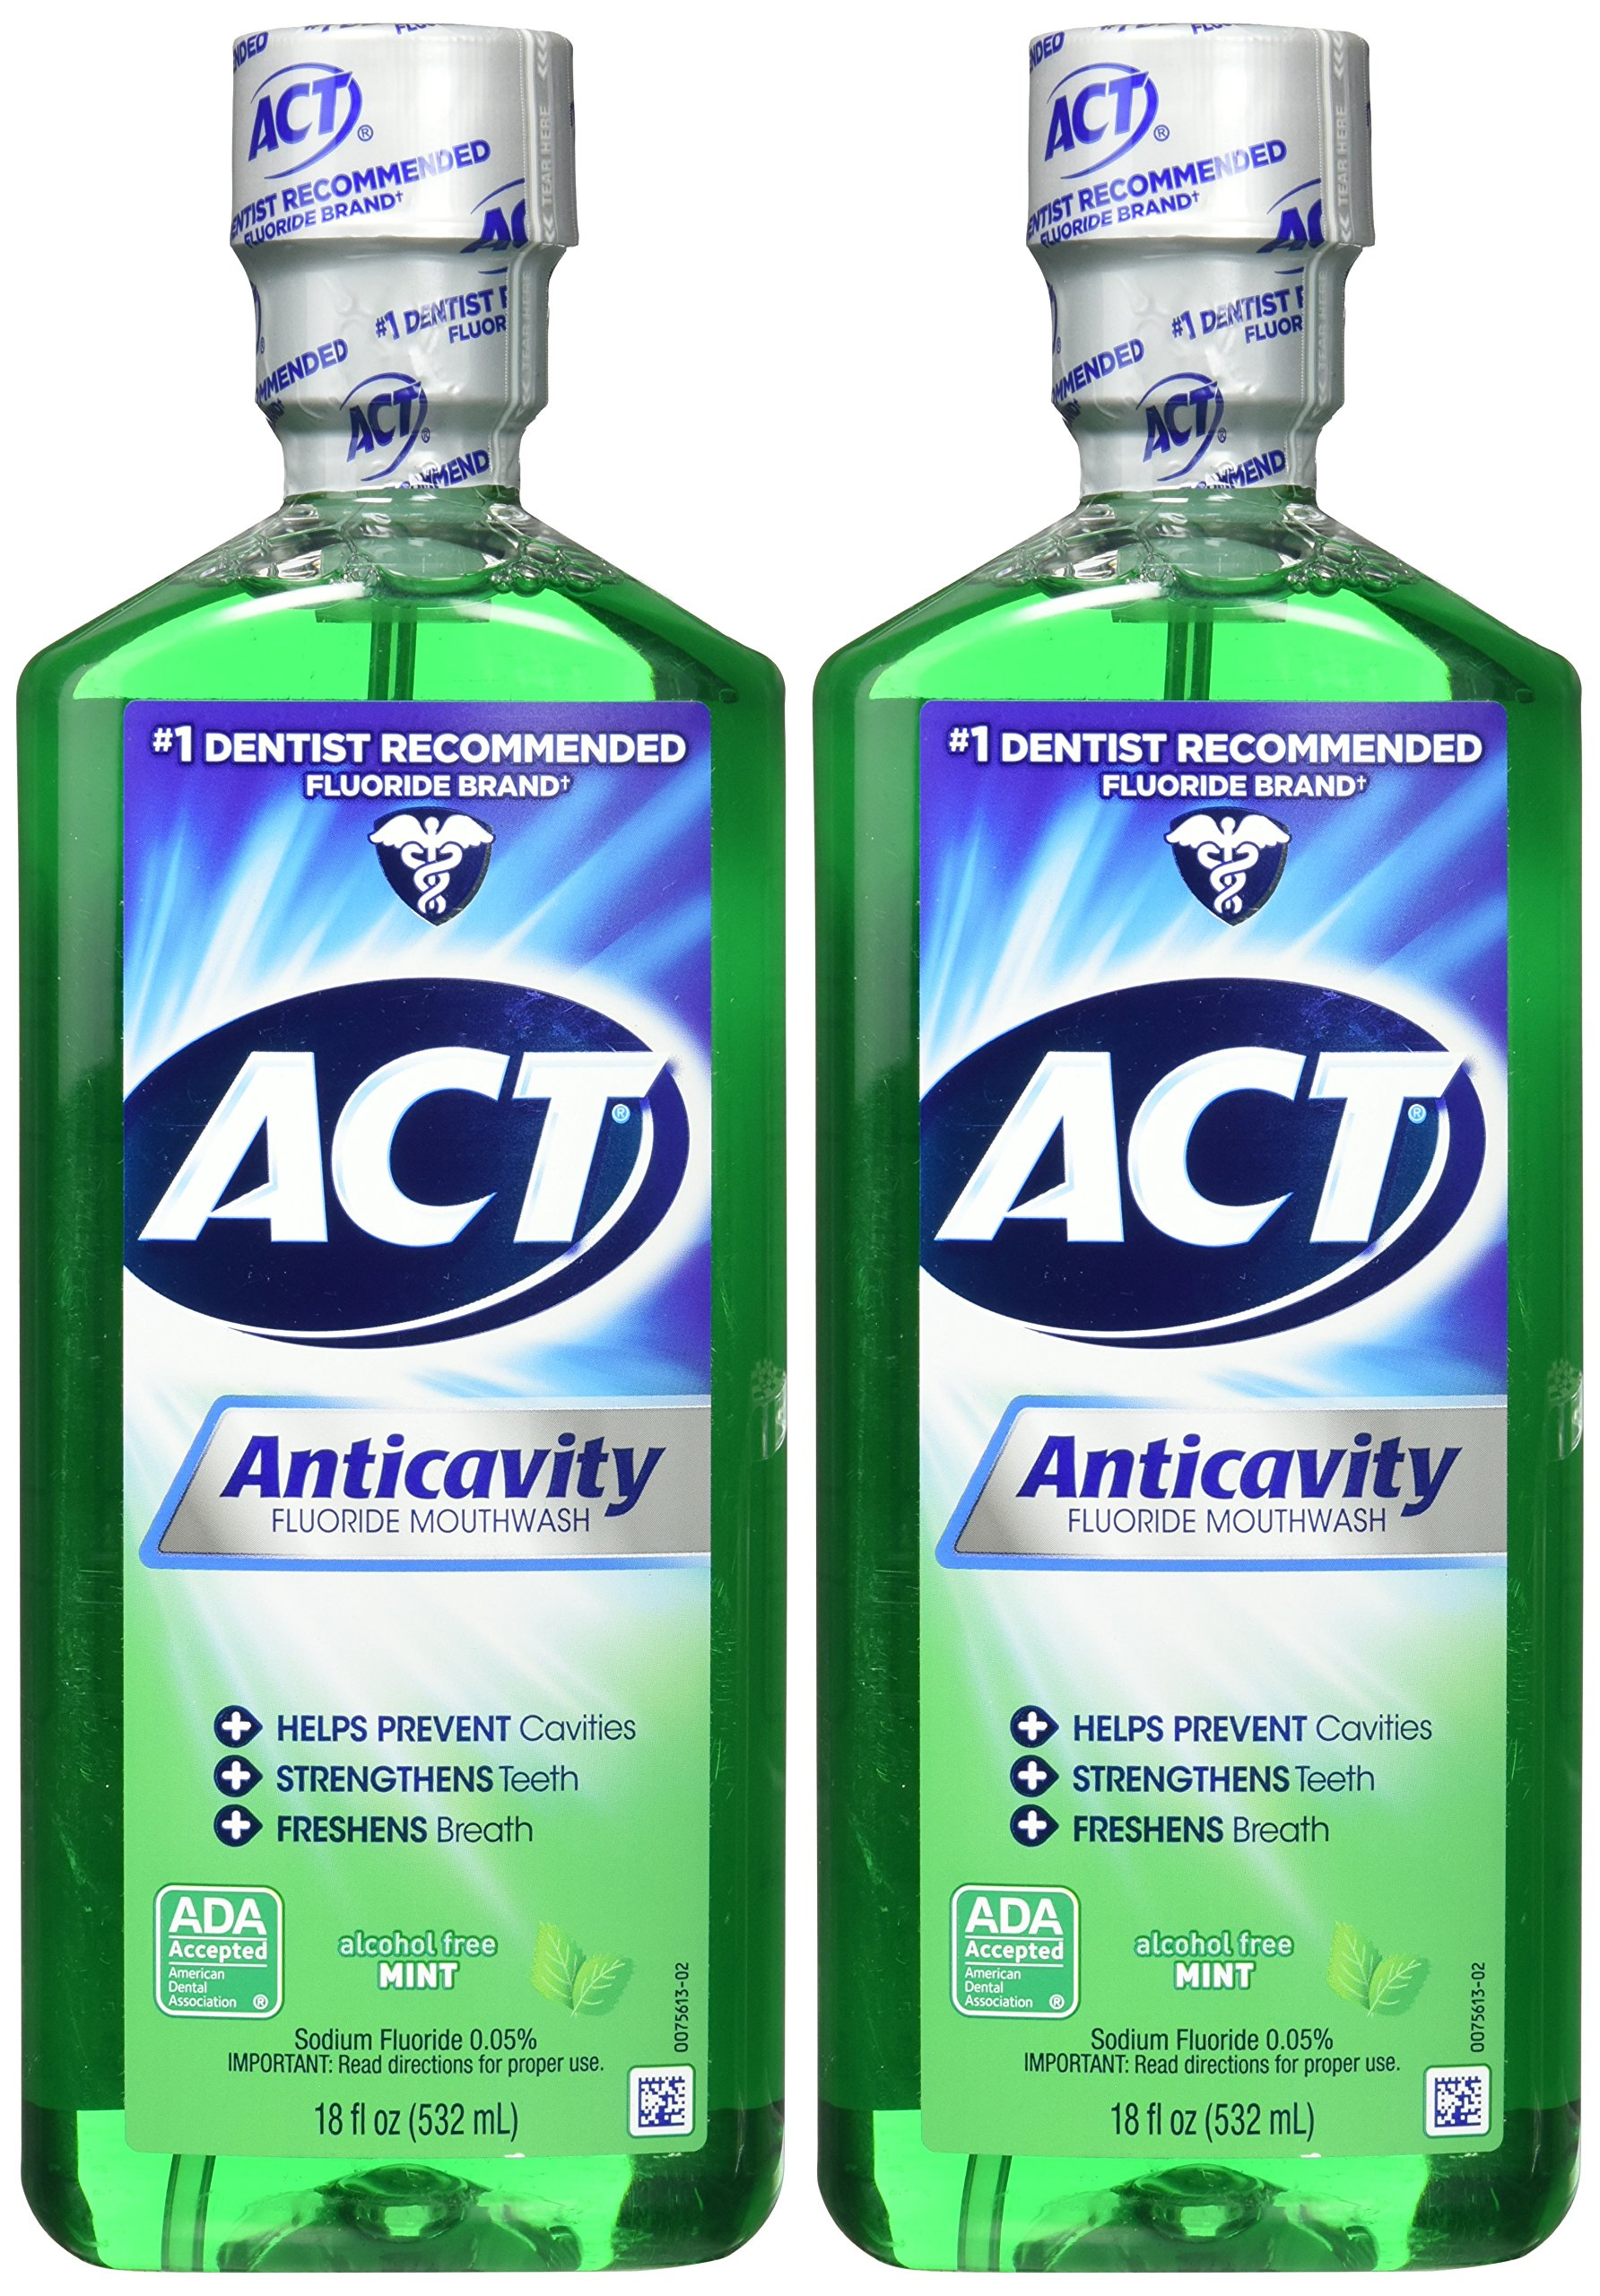 ACT Alcohol Free Anticavity Fluoride Rinse, Mint - 18 oz - 2 pk by ACT (Image #2)